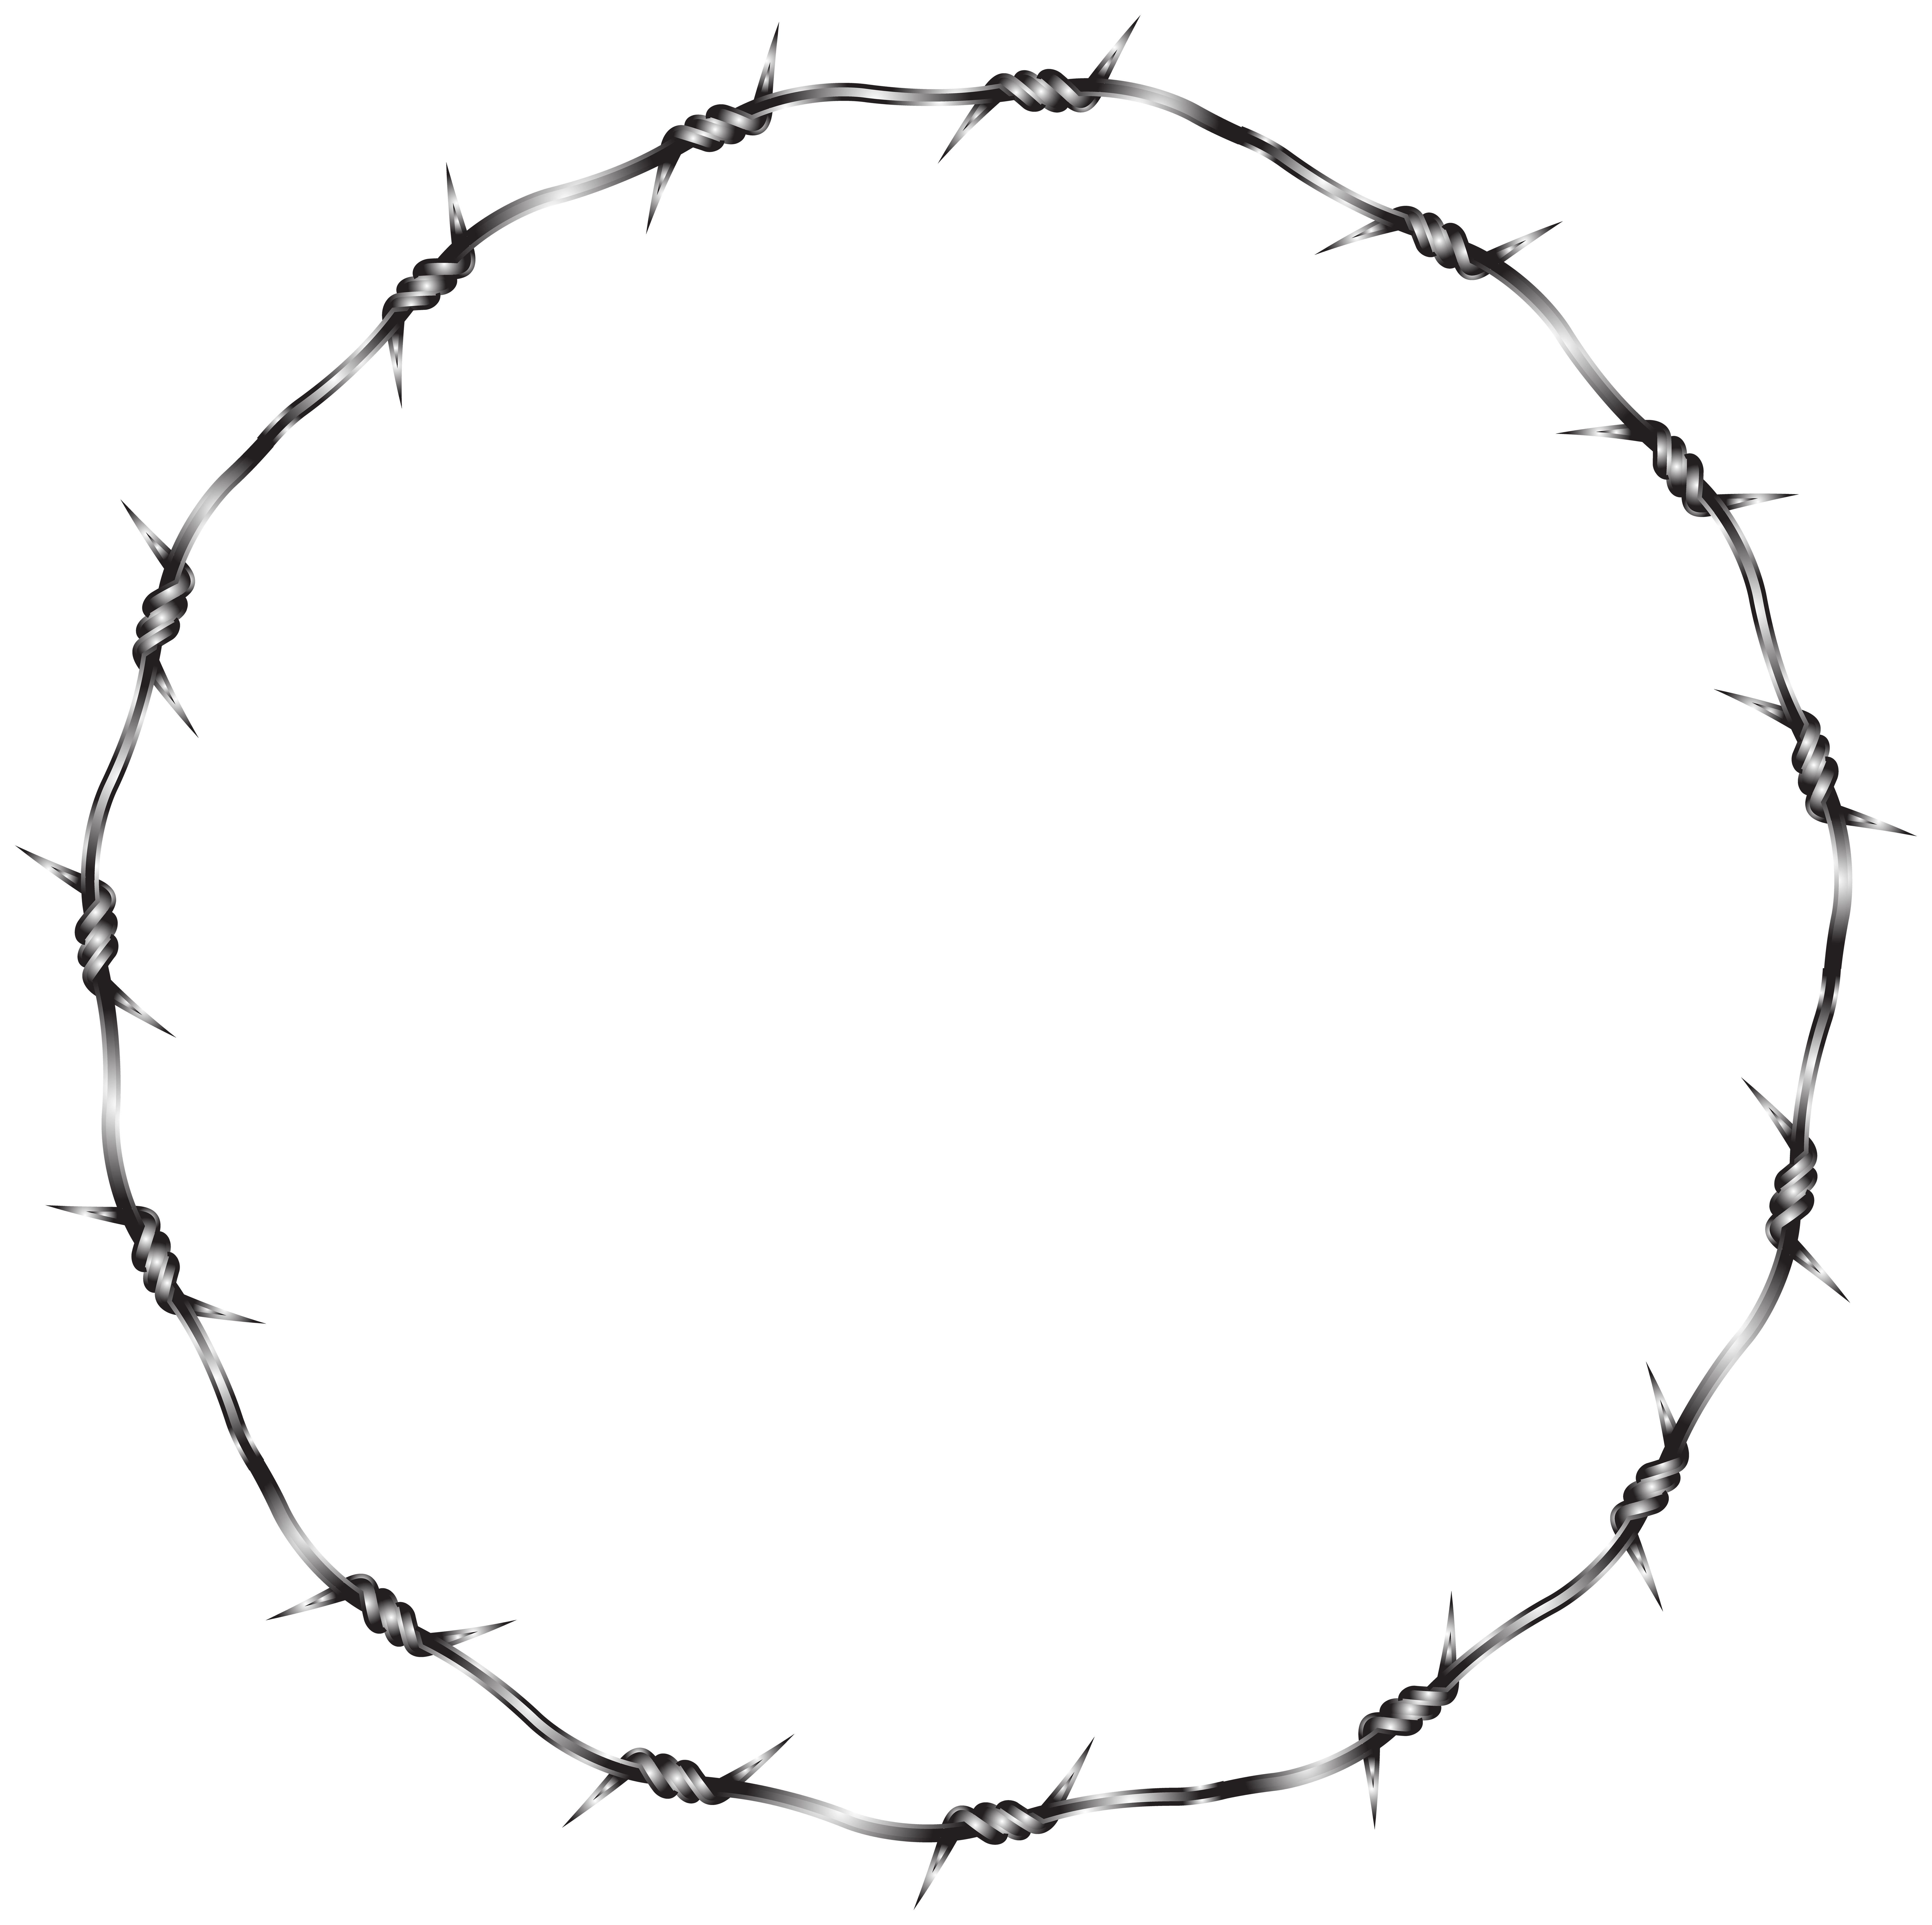 Cross with barb wire clipart transparent stock 28+ Collection of Barbed Wire Clipart Border | High quality, free ... transparent stock